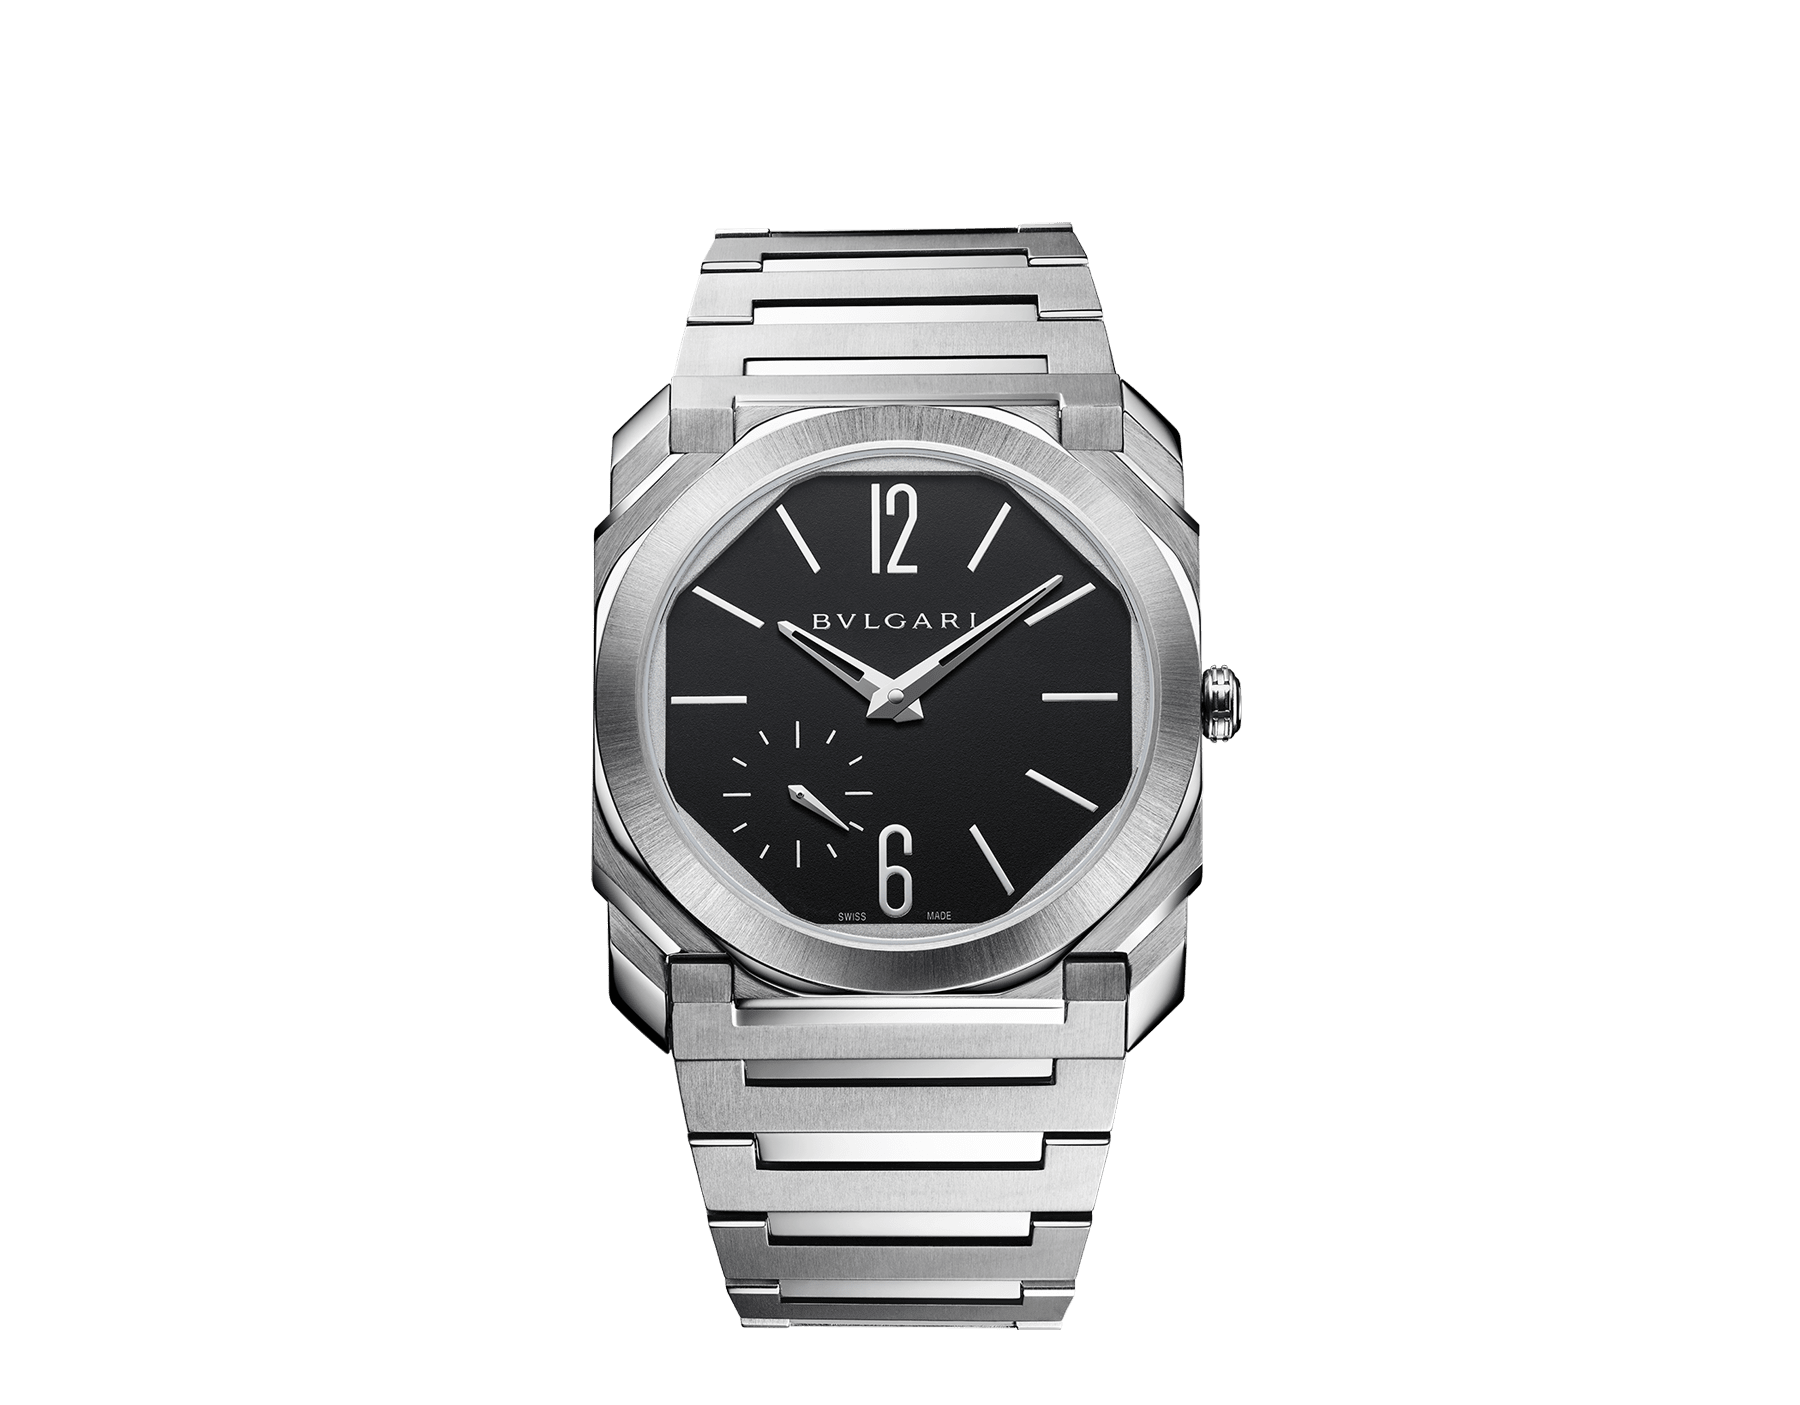 Octo Finissimo Automatic watch with mechanical manufacture movement, automatic winding, platinum microrotor, small seconds, extra-thin satin-polished stainless steel case and bracelet, transparent case back and black matte dial. Water-resistant up to 100 metres 103297 image 1